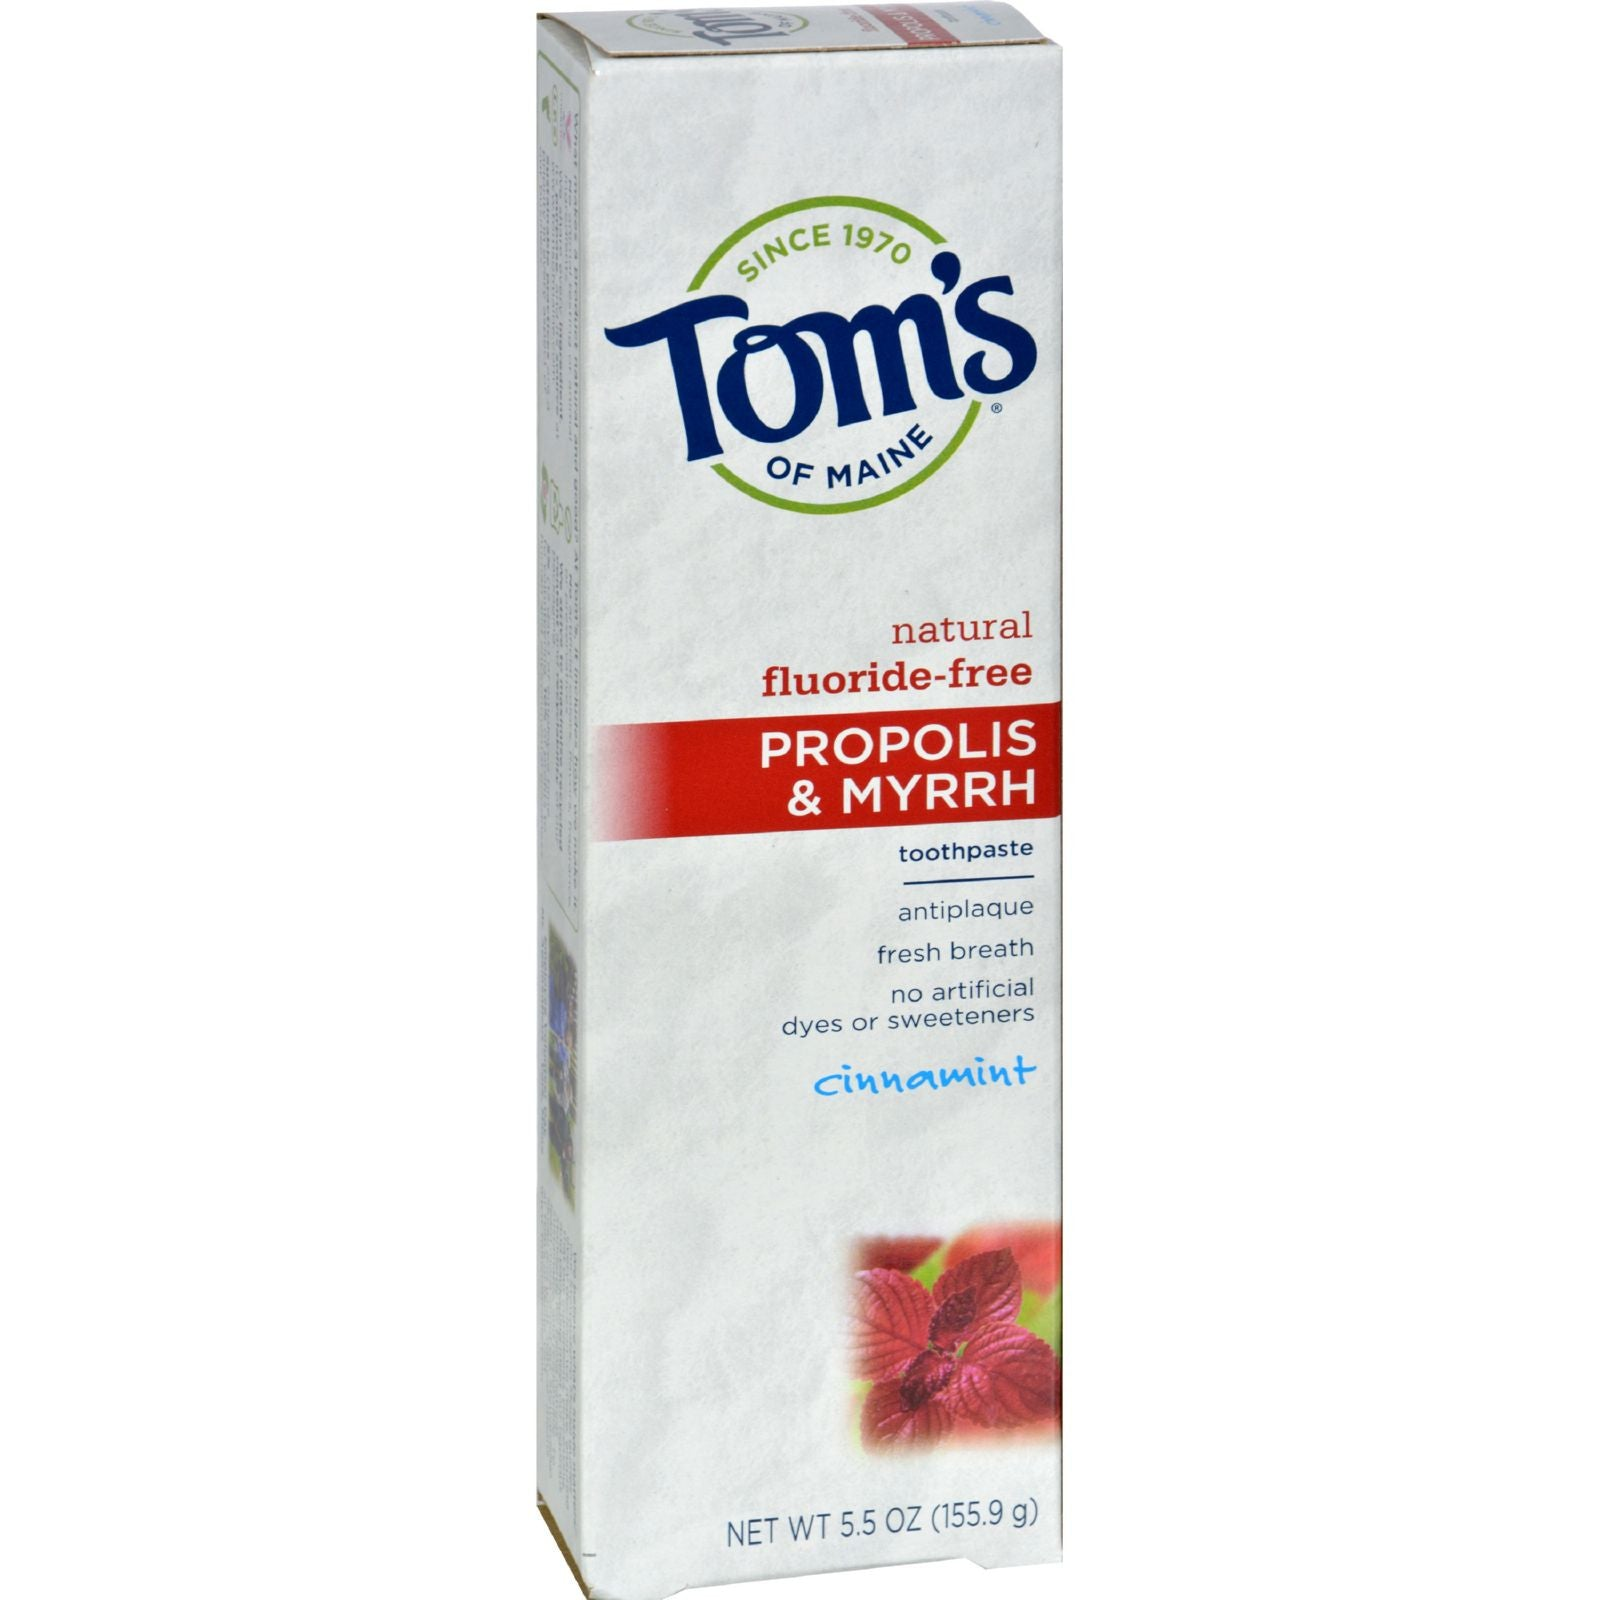 Toms of Maine Propolis and Myrrh Toothpaste Cinnamint -